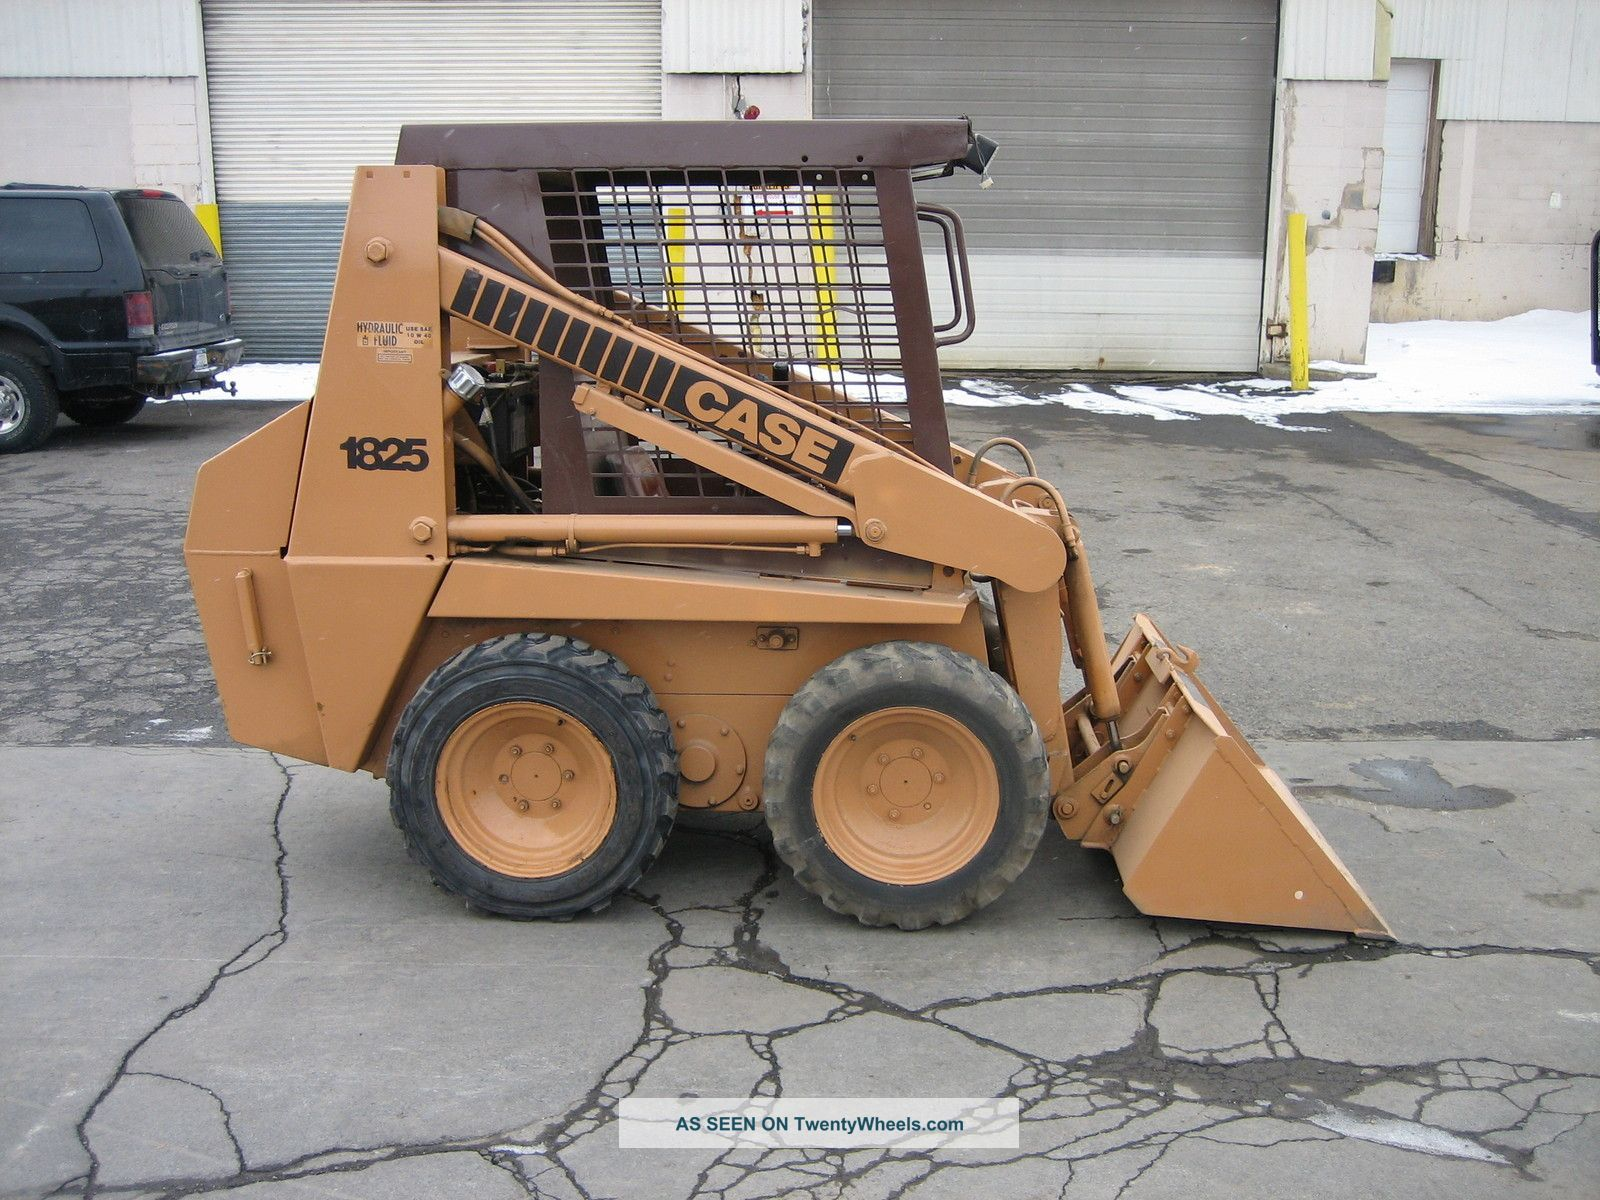 victoria heavy equipment case Vi equipment sells used, rebuilt & new excavator parts for hitachi, deere & caterpillar excavators shipping to the usa, canada & worldwide.